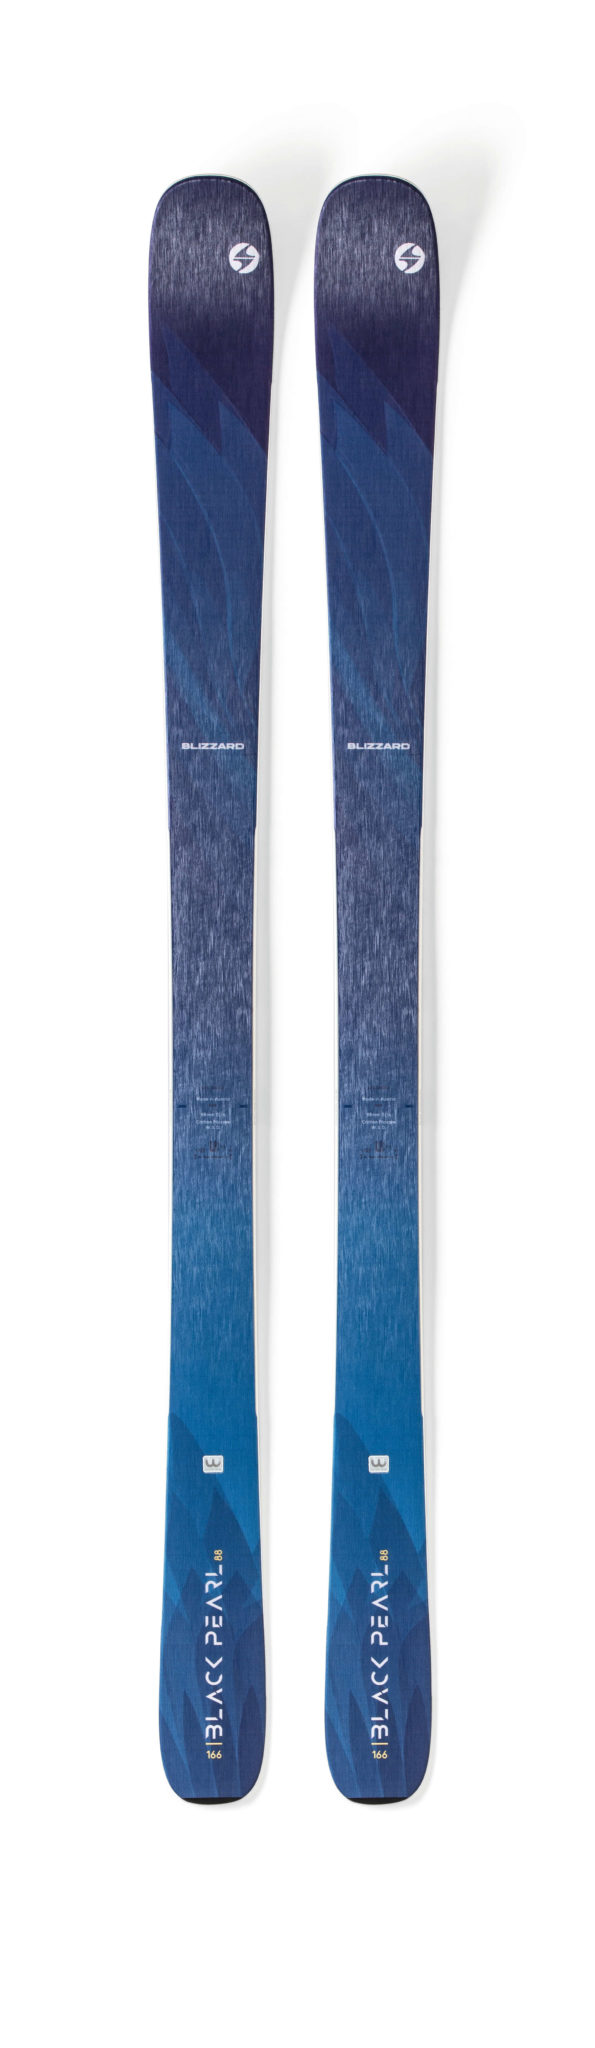 Blizzard Black Pearl 88 Skis (Flat) 2019-20 at Northern Ski Works